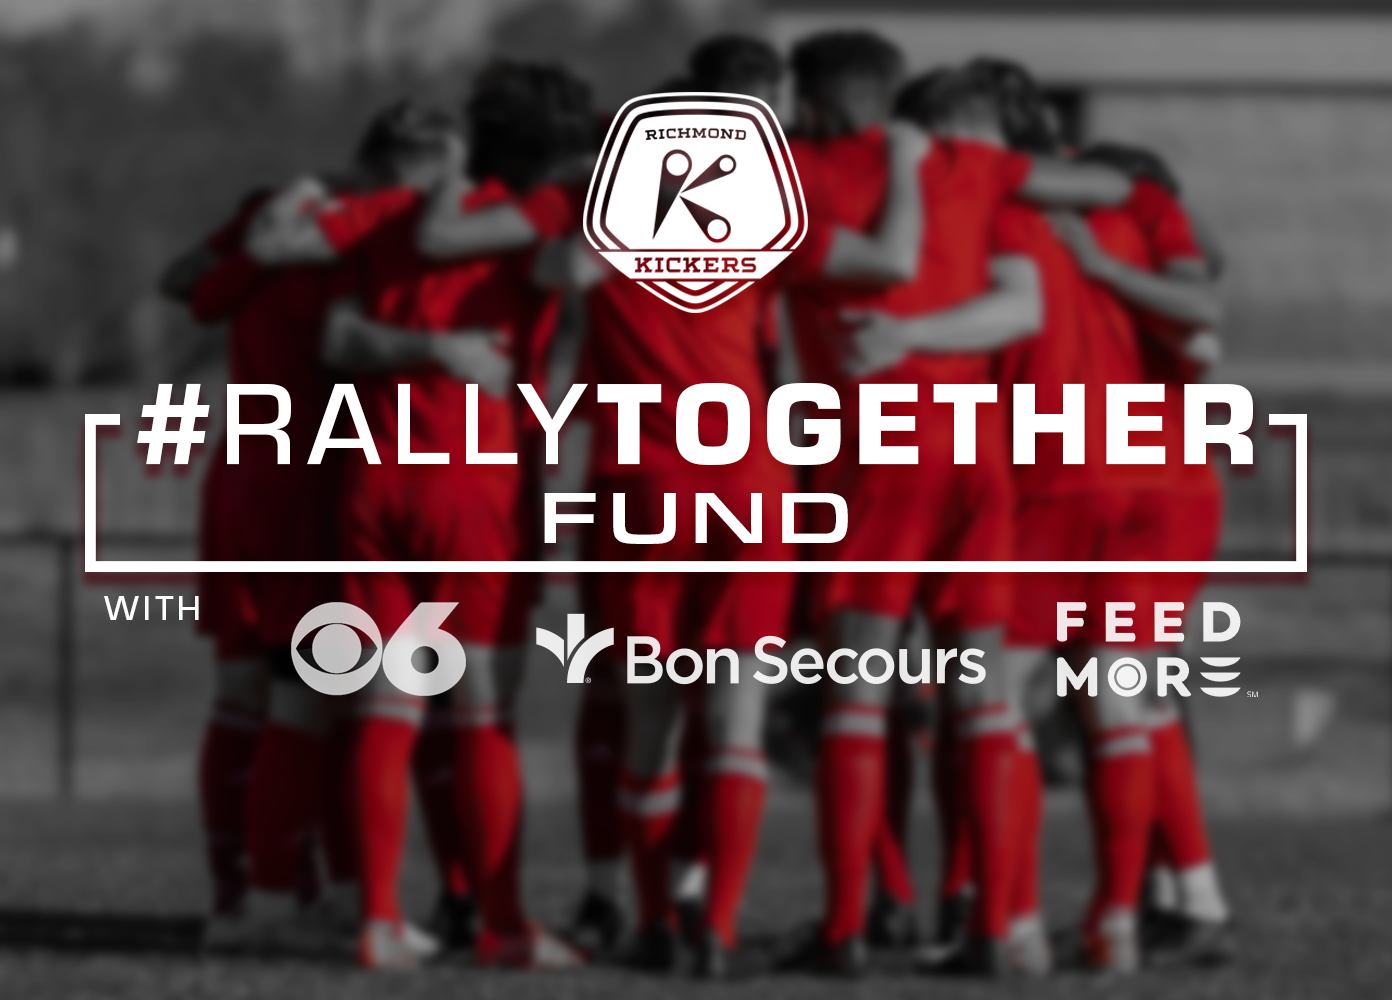 Richmond Kickers Rally Together graphic